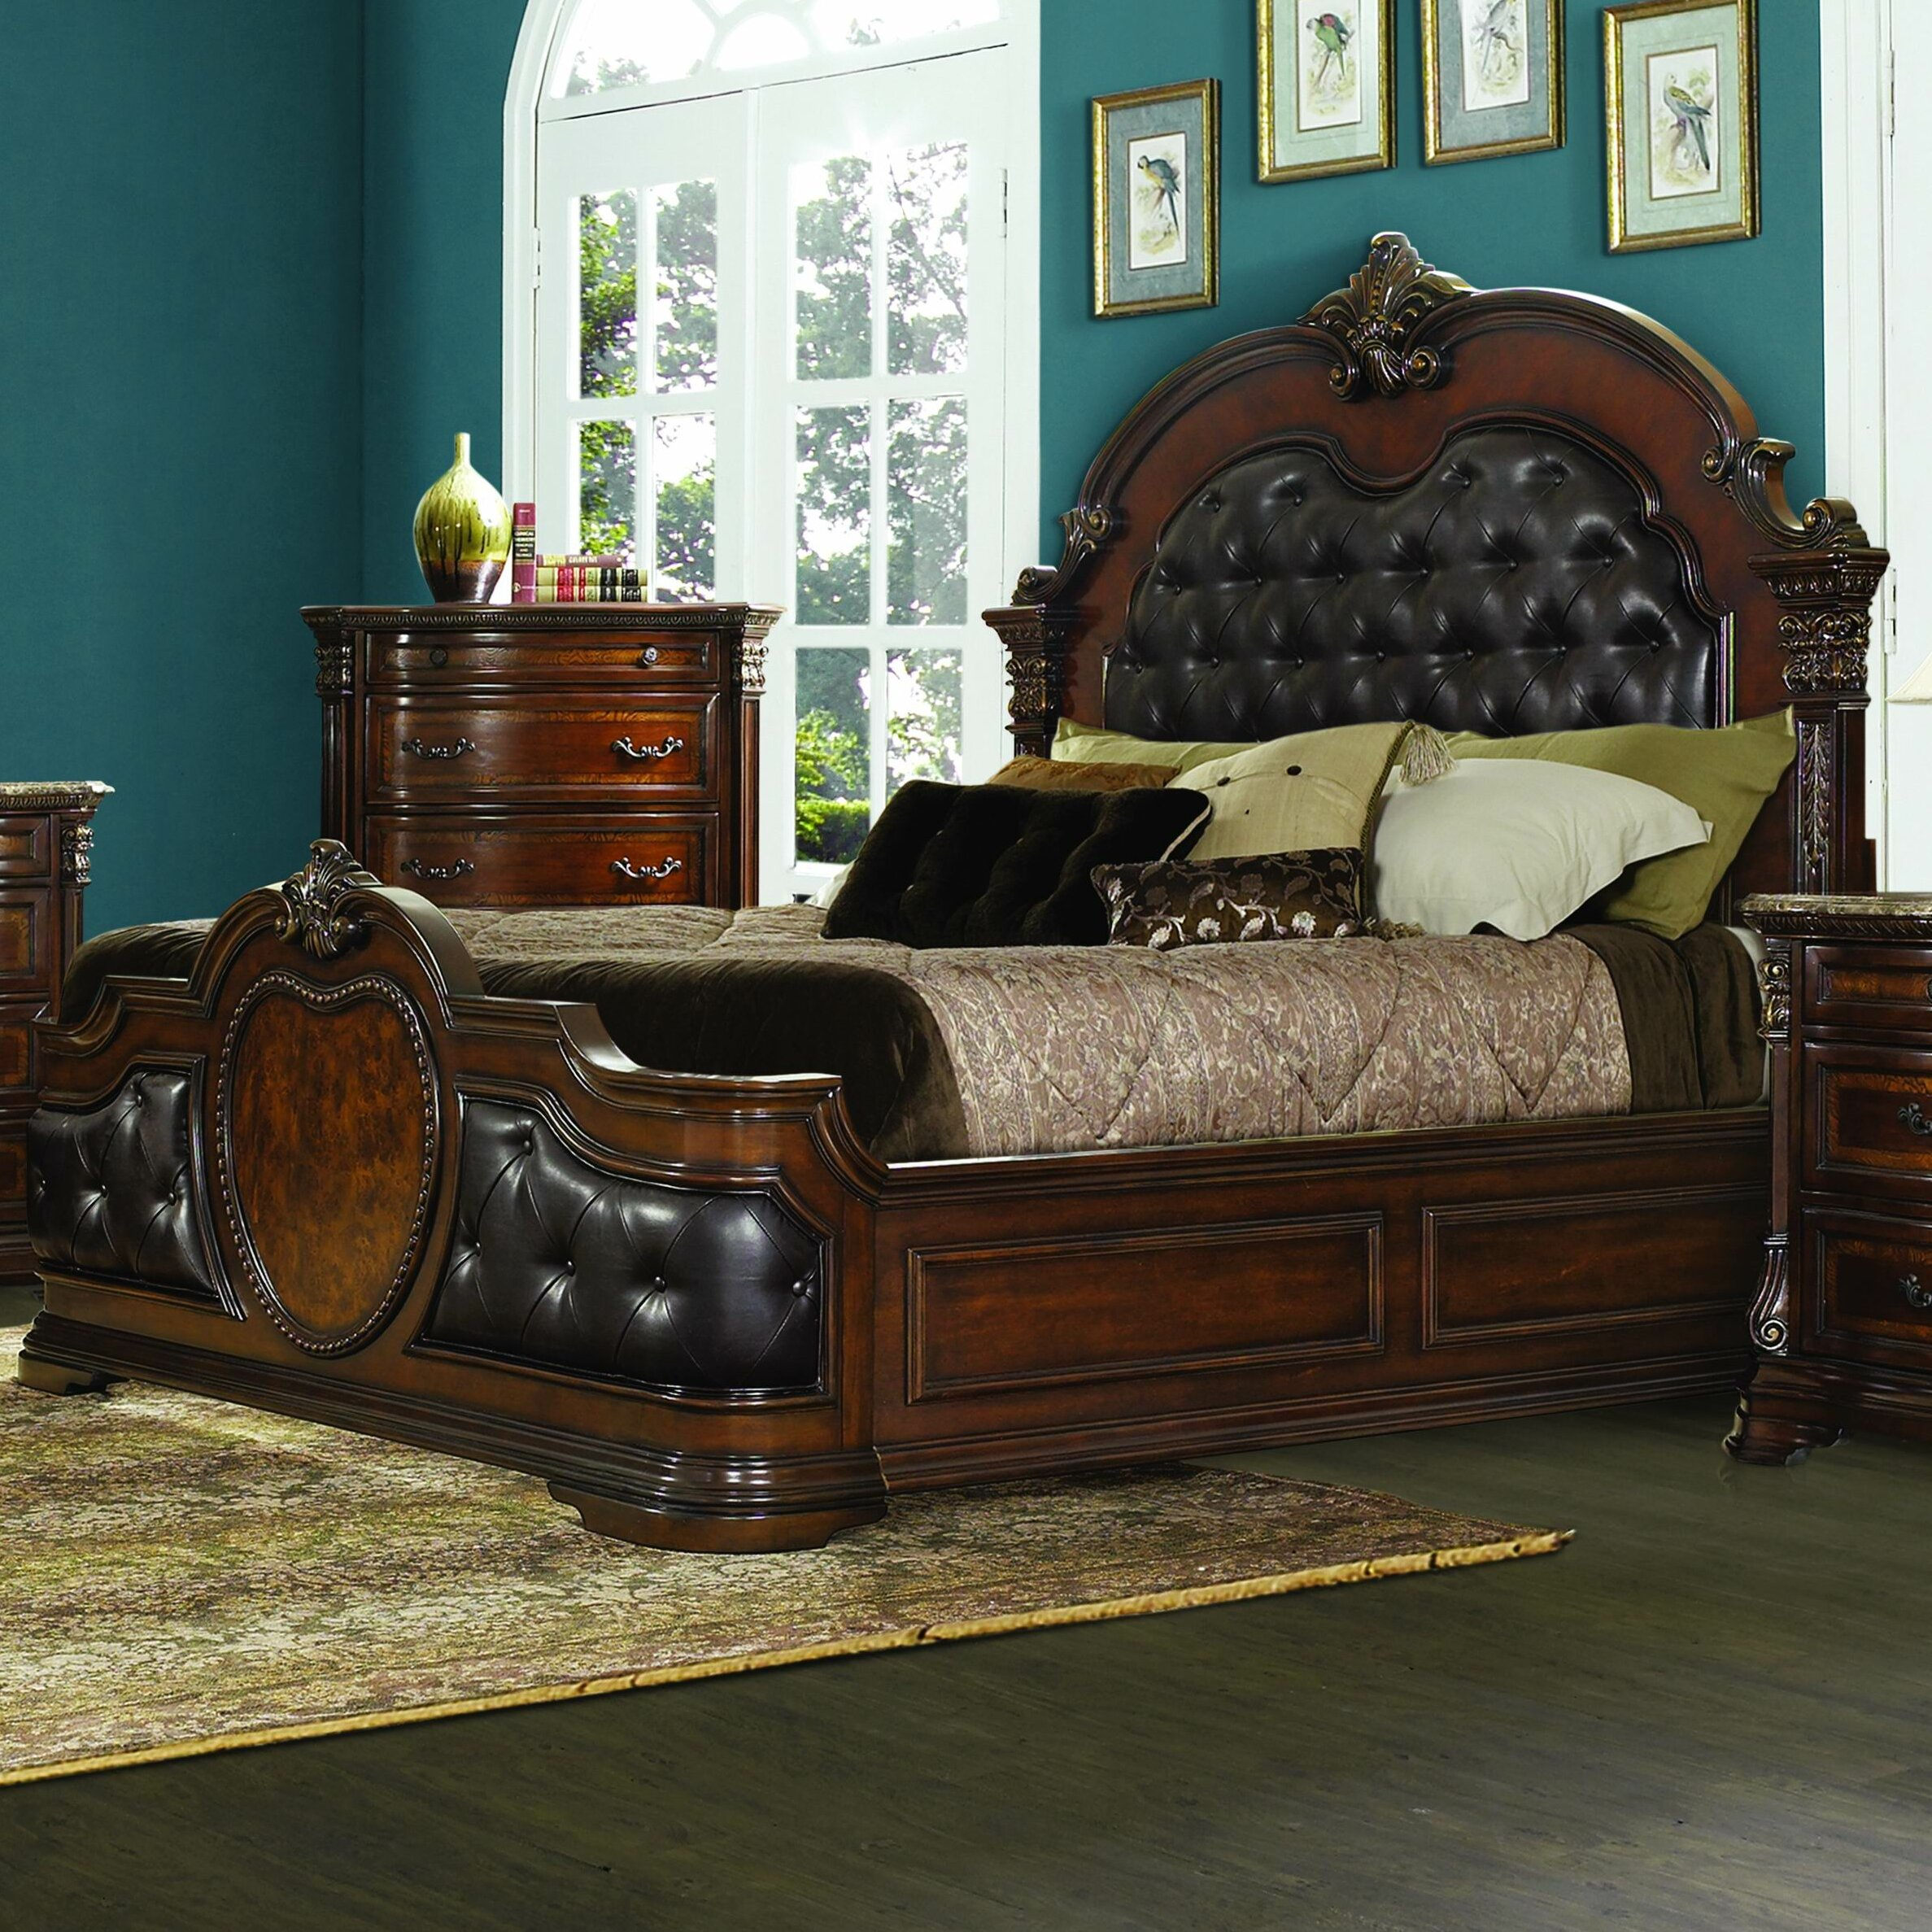 about gallery gold of home decor silvergold ideas sets and also bedroom furniture set top florentina homelegance